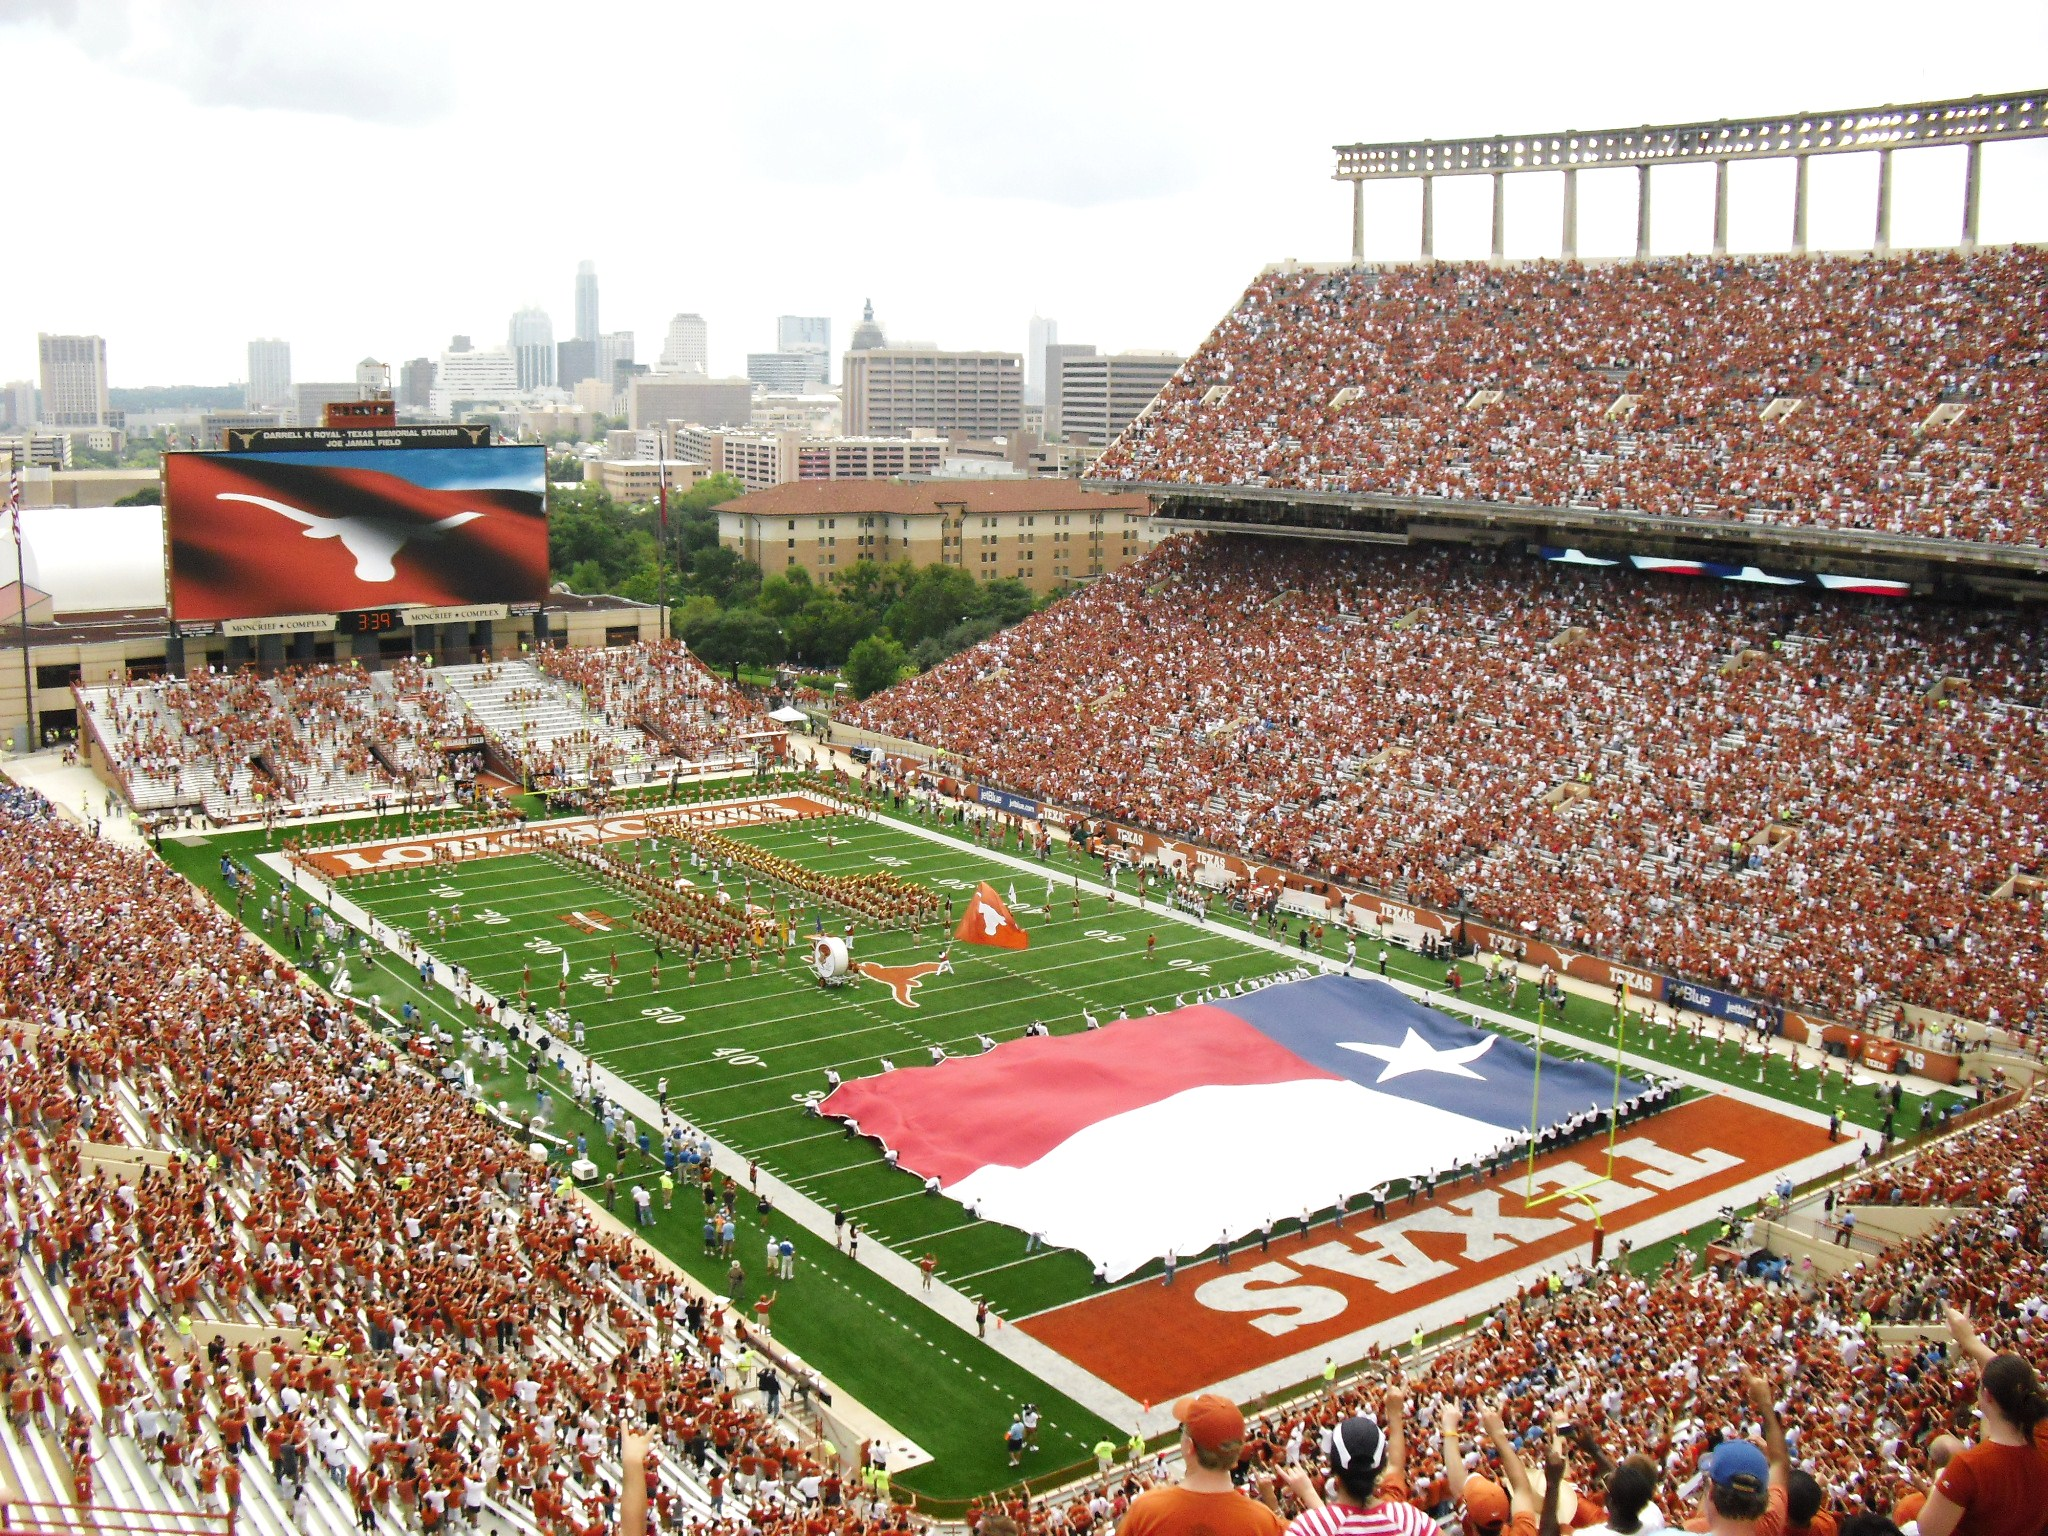 The University of Texas at Austin has an enormous vibrant campus. The ...